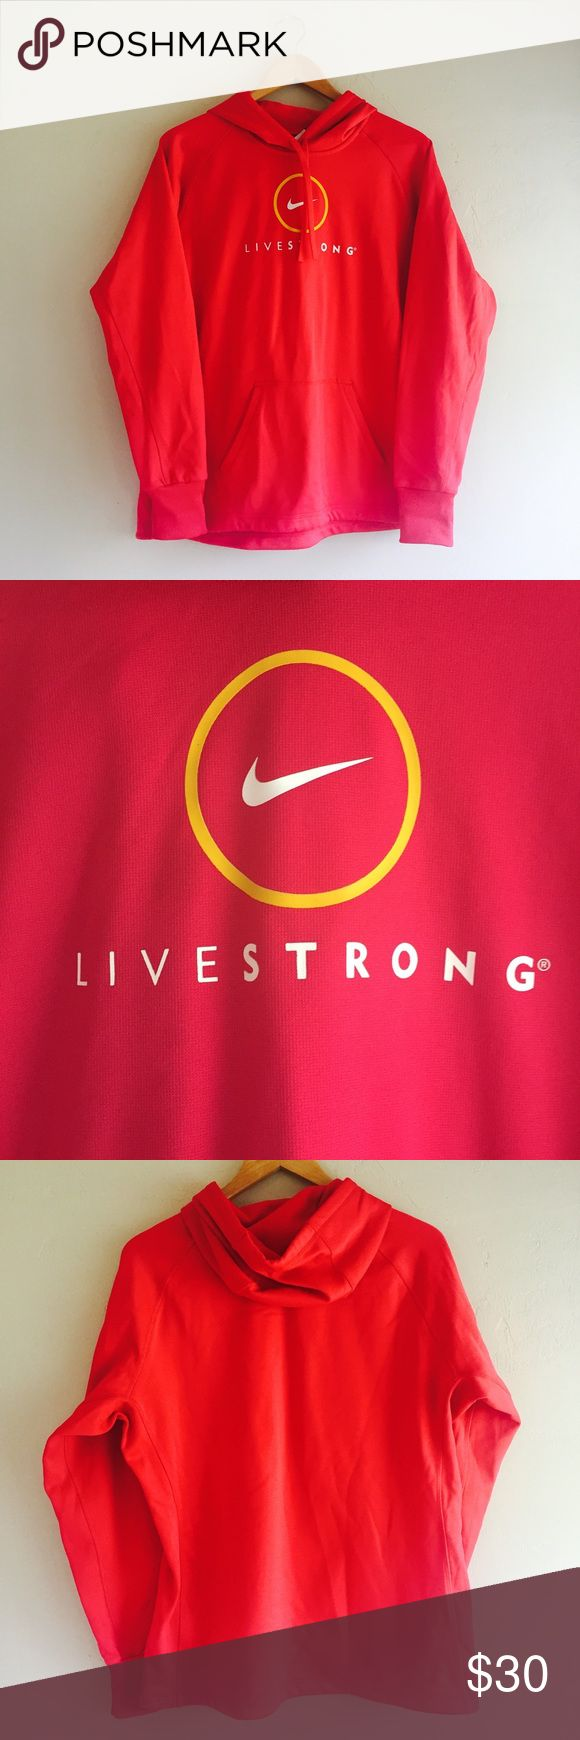 Nike Livestrong Therma Fit Pink Hoodie Sweatshirt Women's Nike Livestrong Therma Fit Pink Fleece Lined Hoodie Sweatshirt  Sz Large 100% polyester  Preowned good condition Nike Tops Sweatshirts & Hoodies